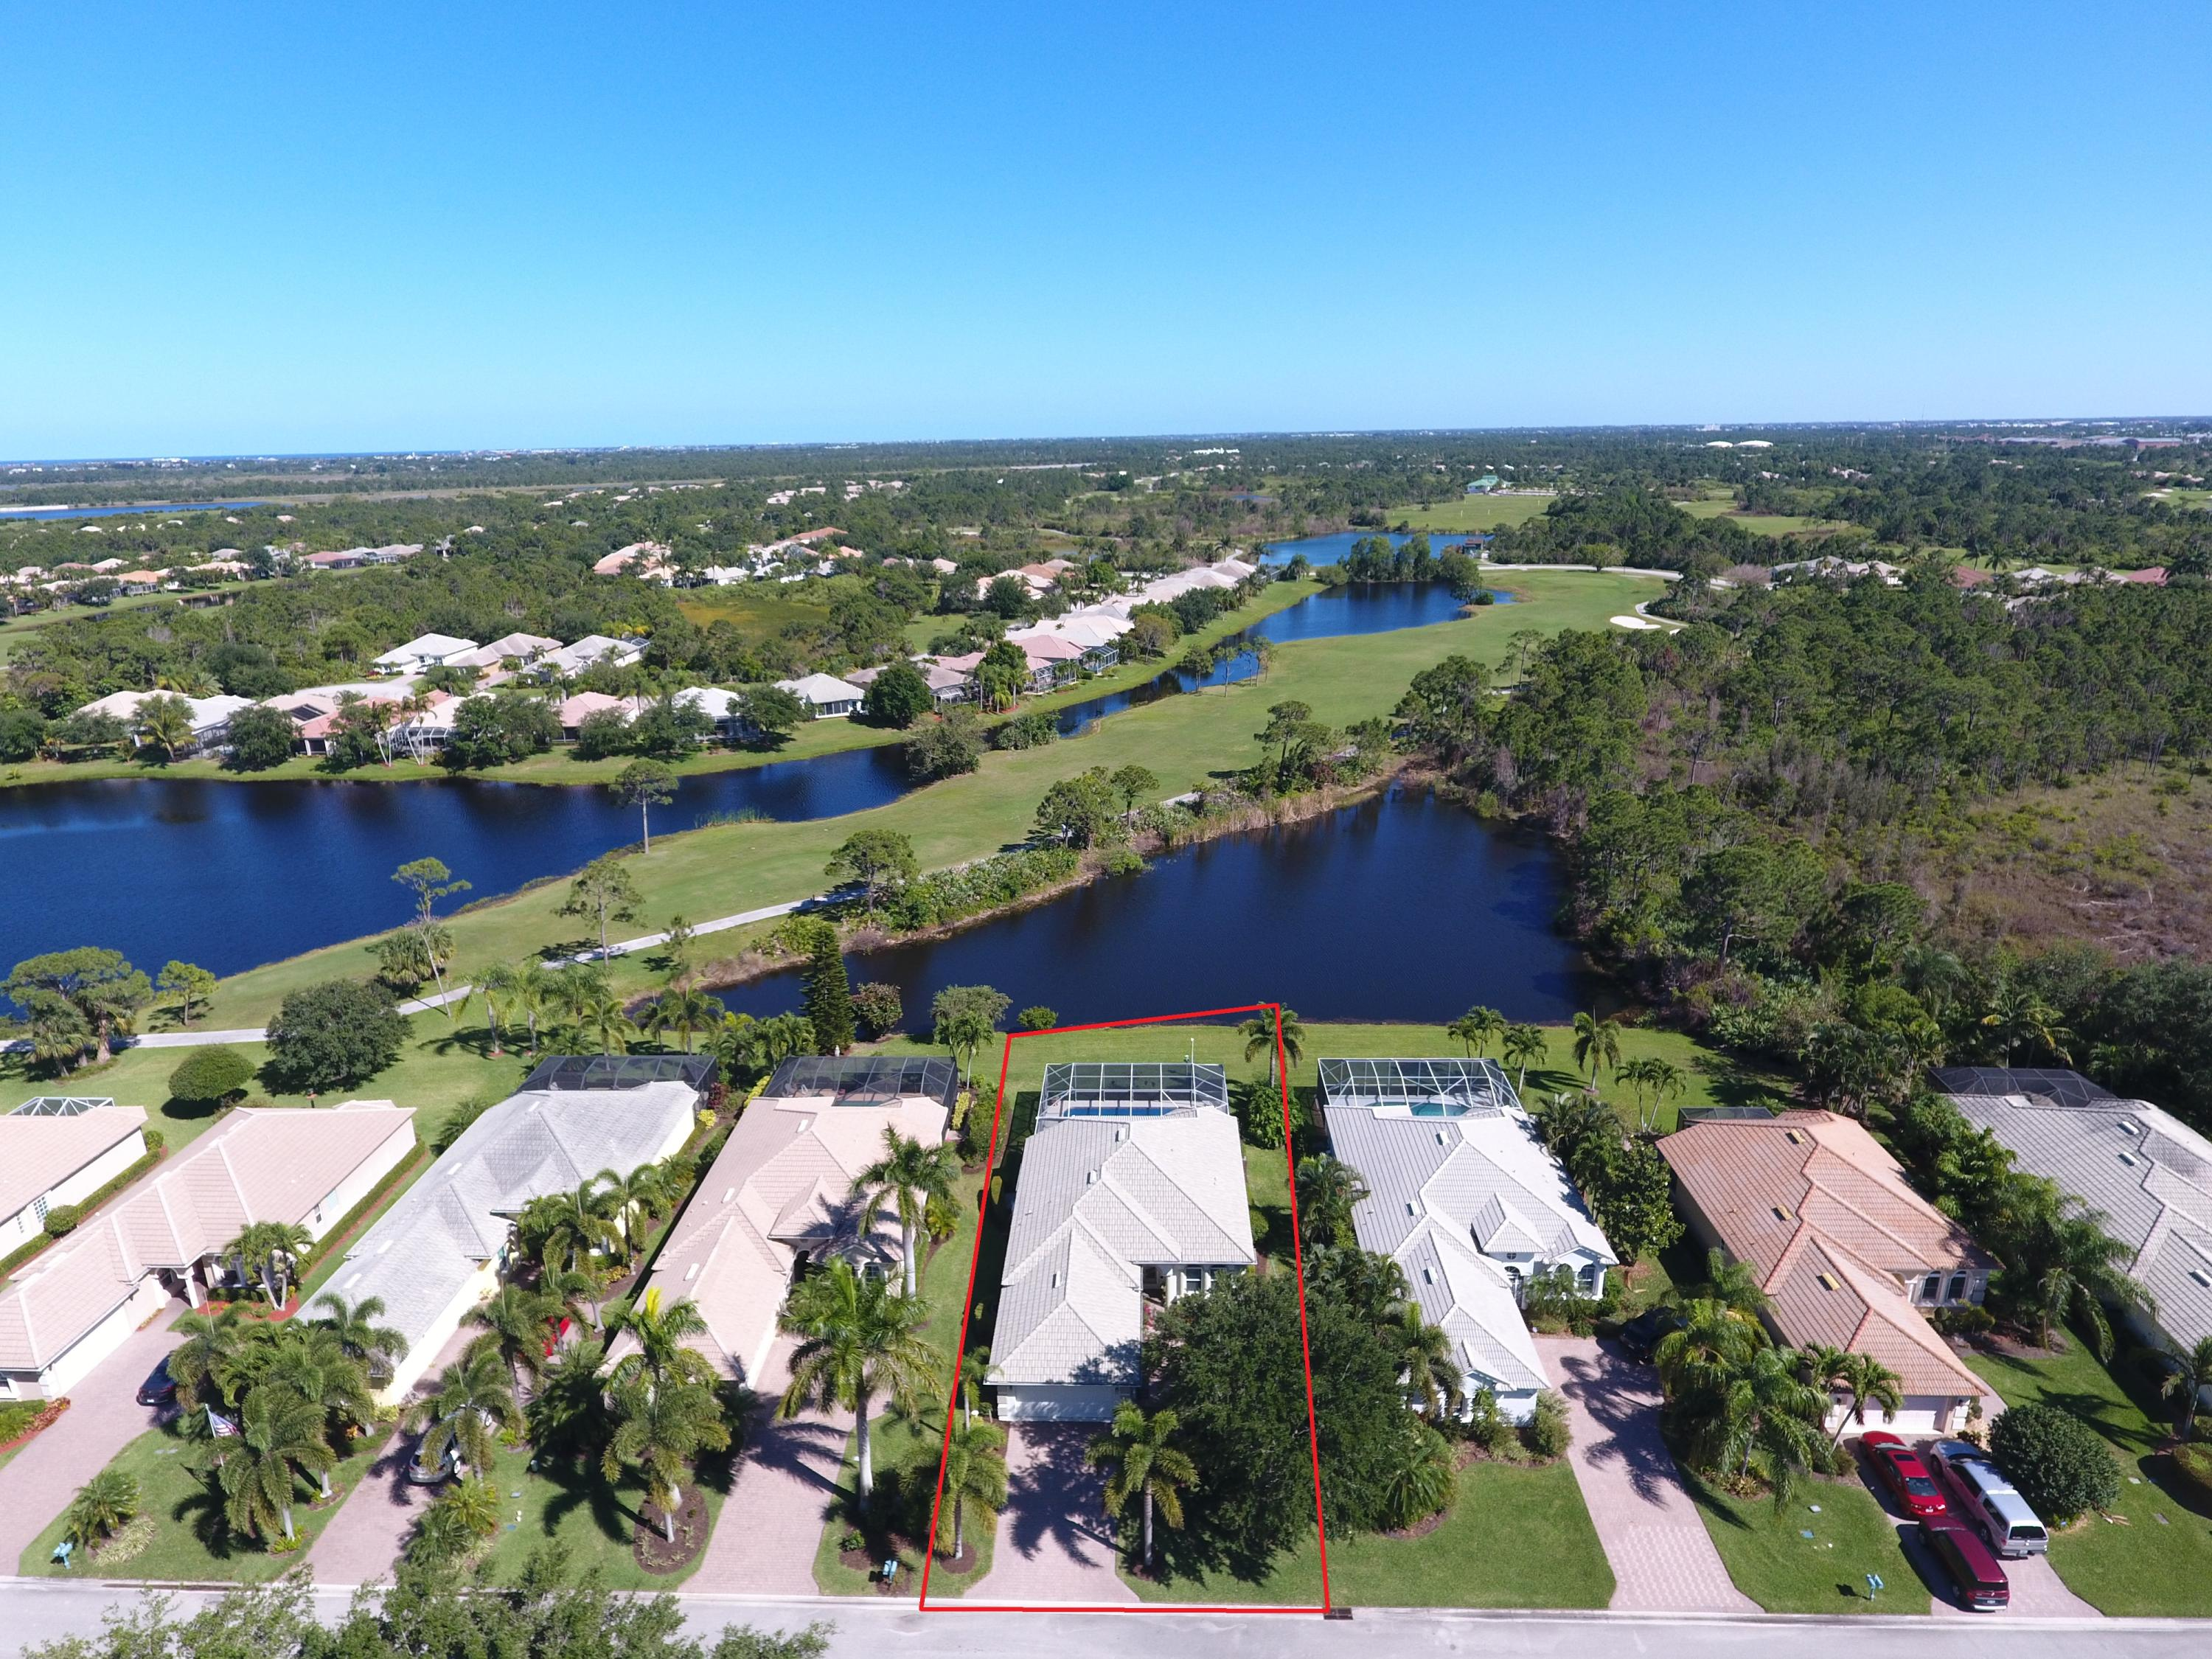 LOT 26 PLAT 6 JENSEN BEACH COUNTRY CLUB OF WEST JENSEN PUD (PB 14 PG 91)